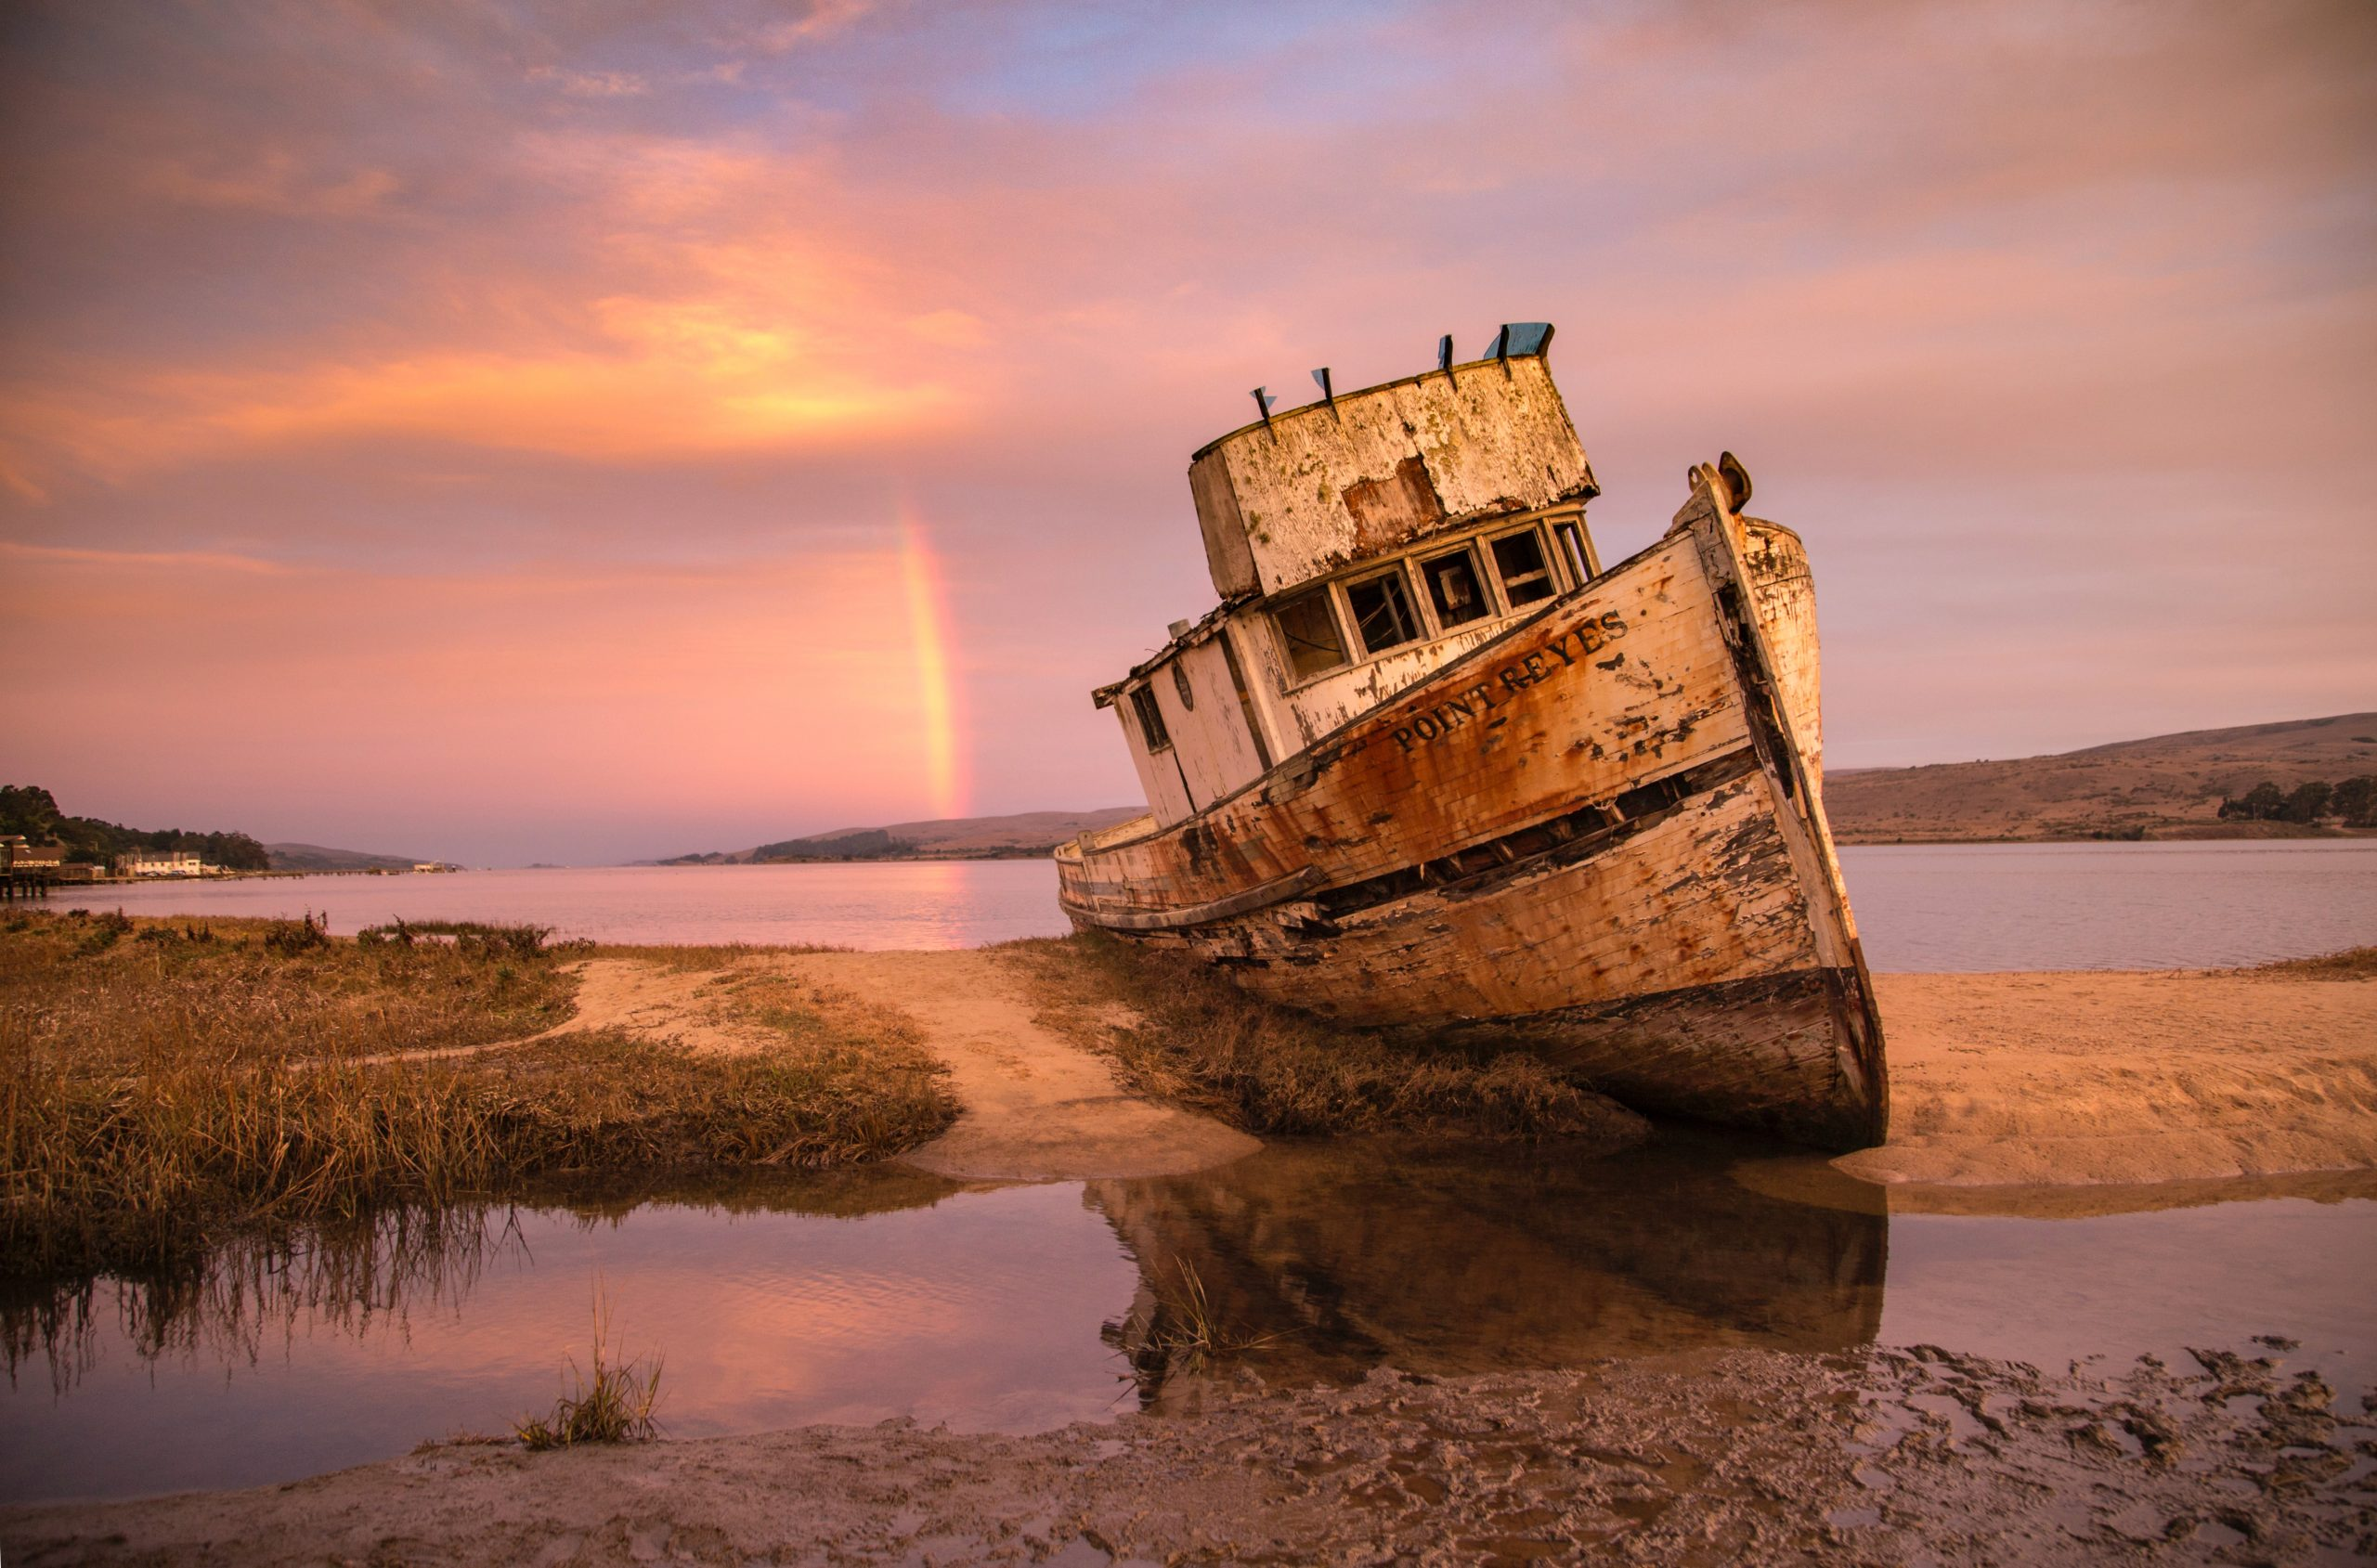 Shipwreck with rainbow in background